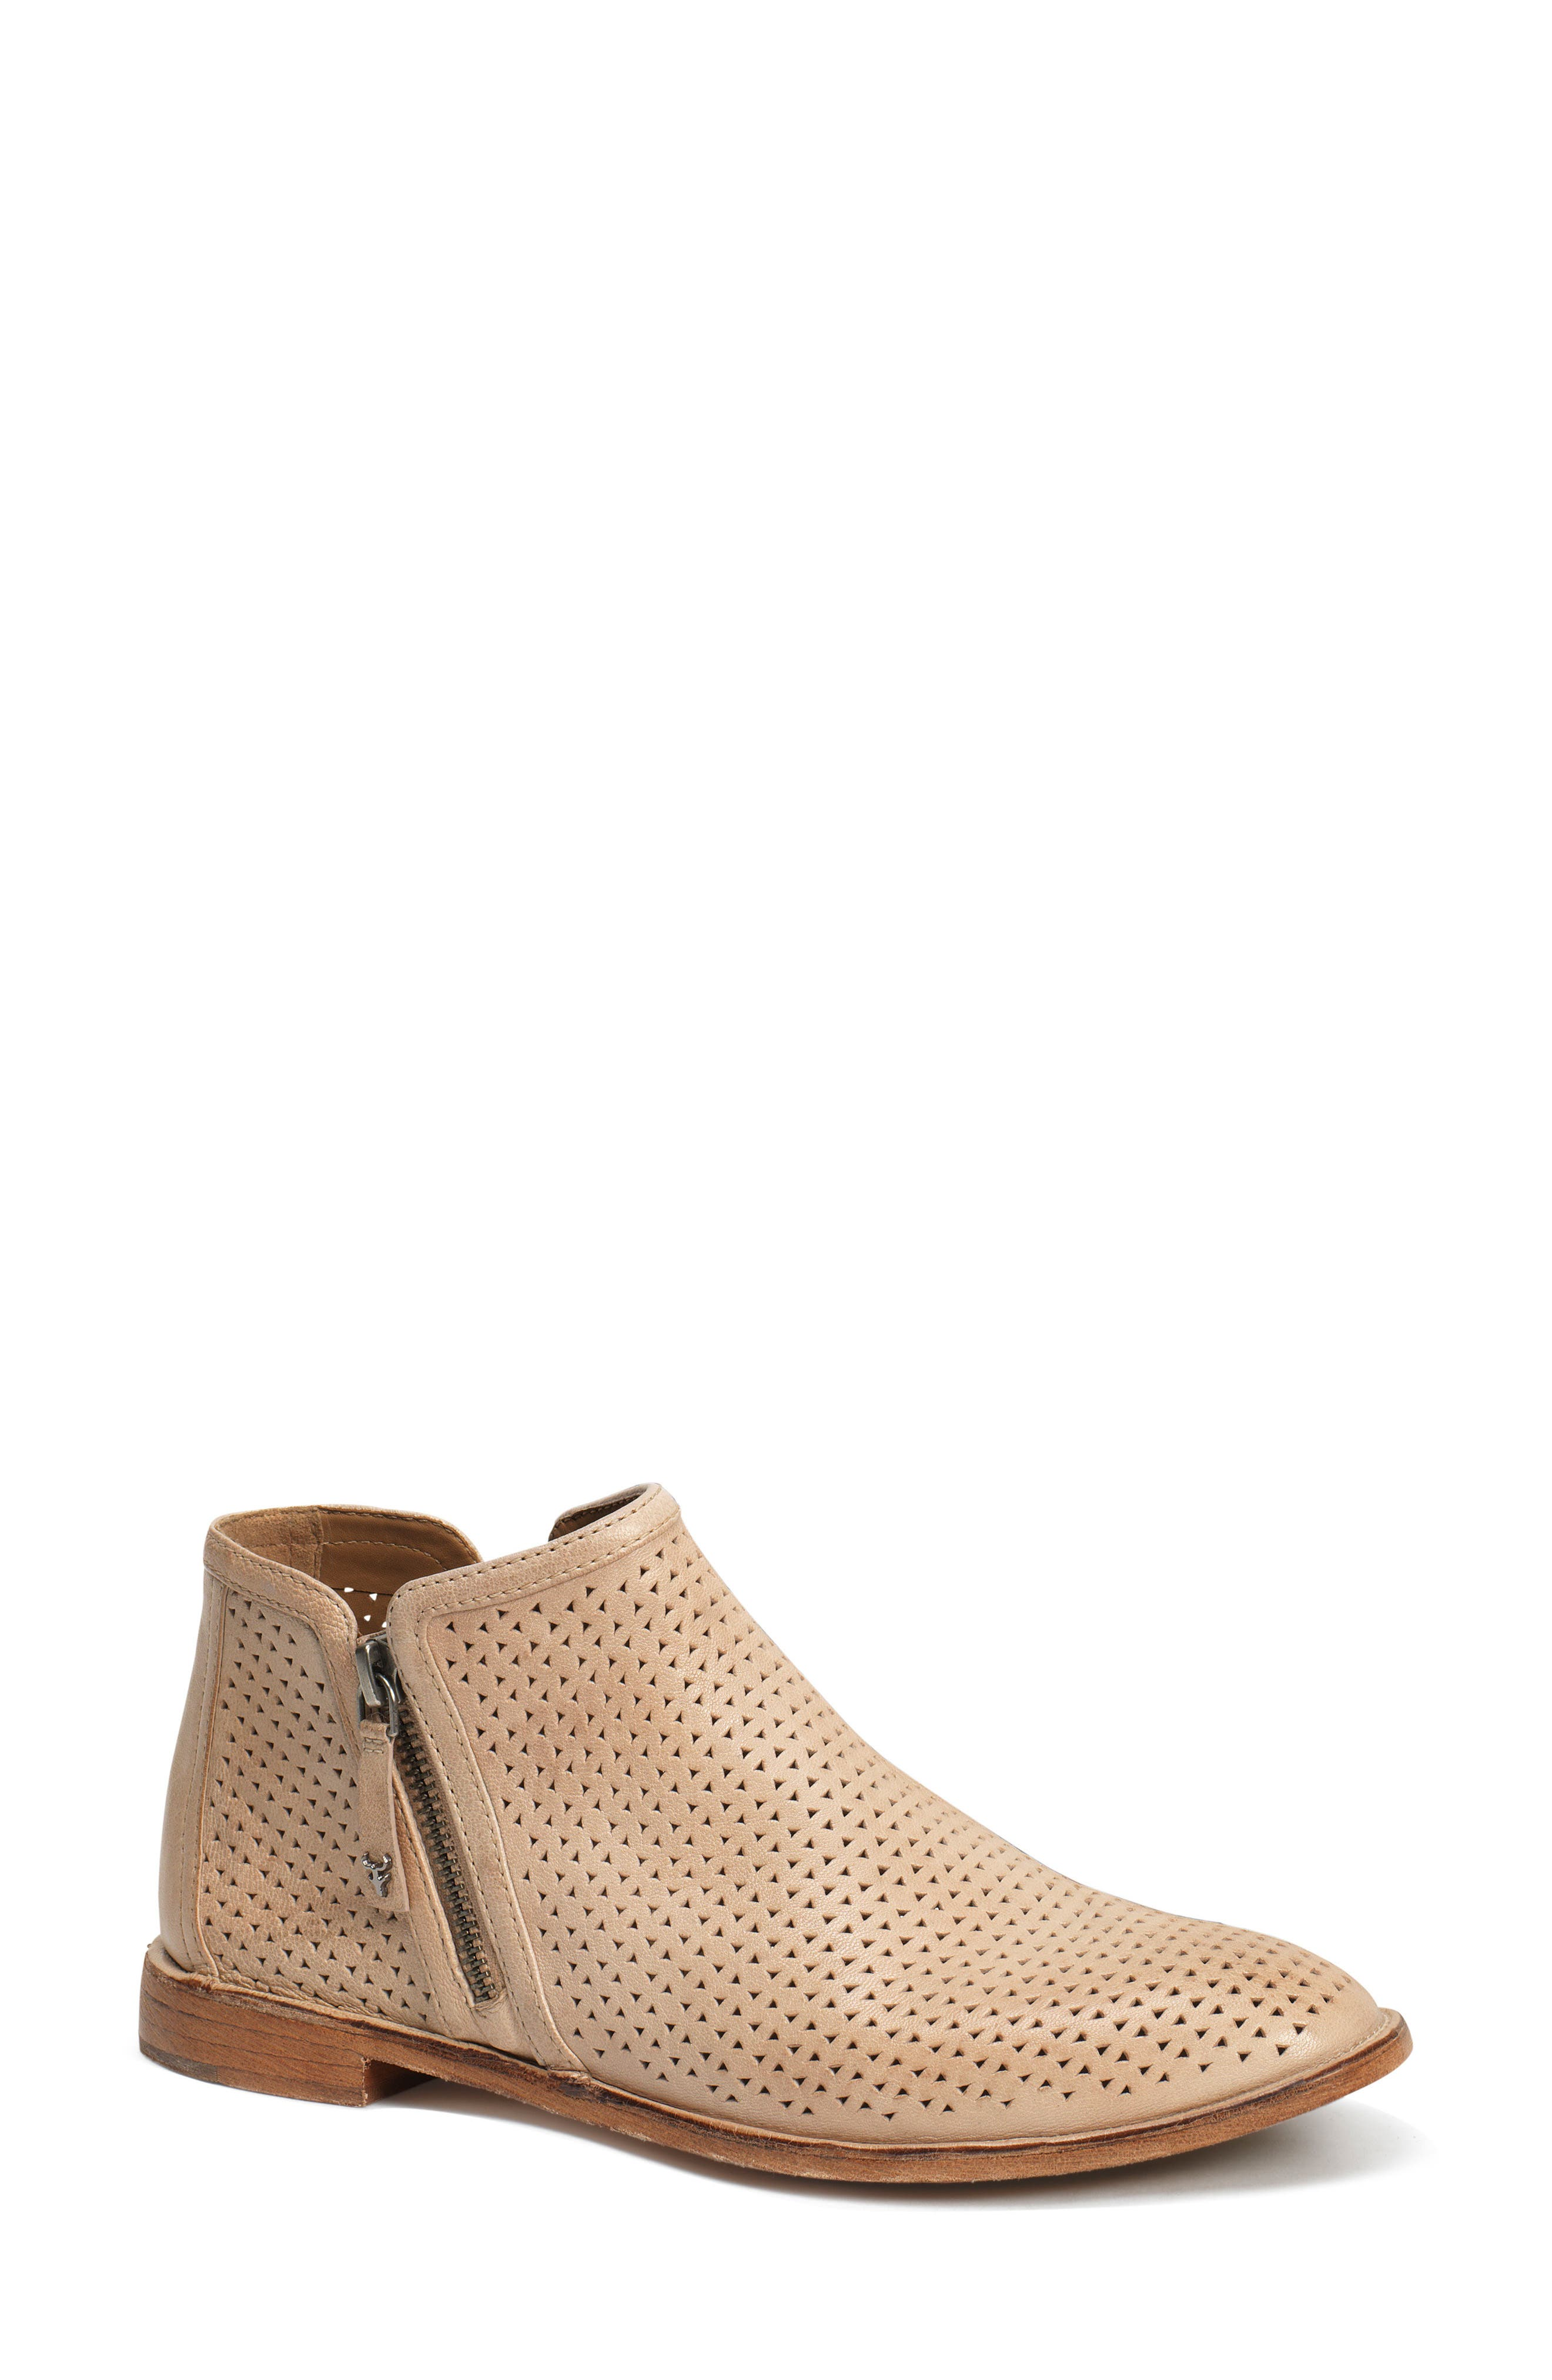 Trask Addison Low Perforated Bootie, White